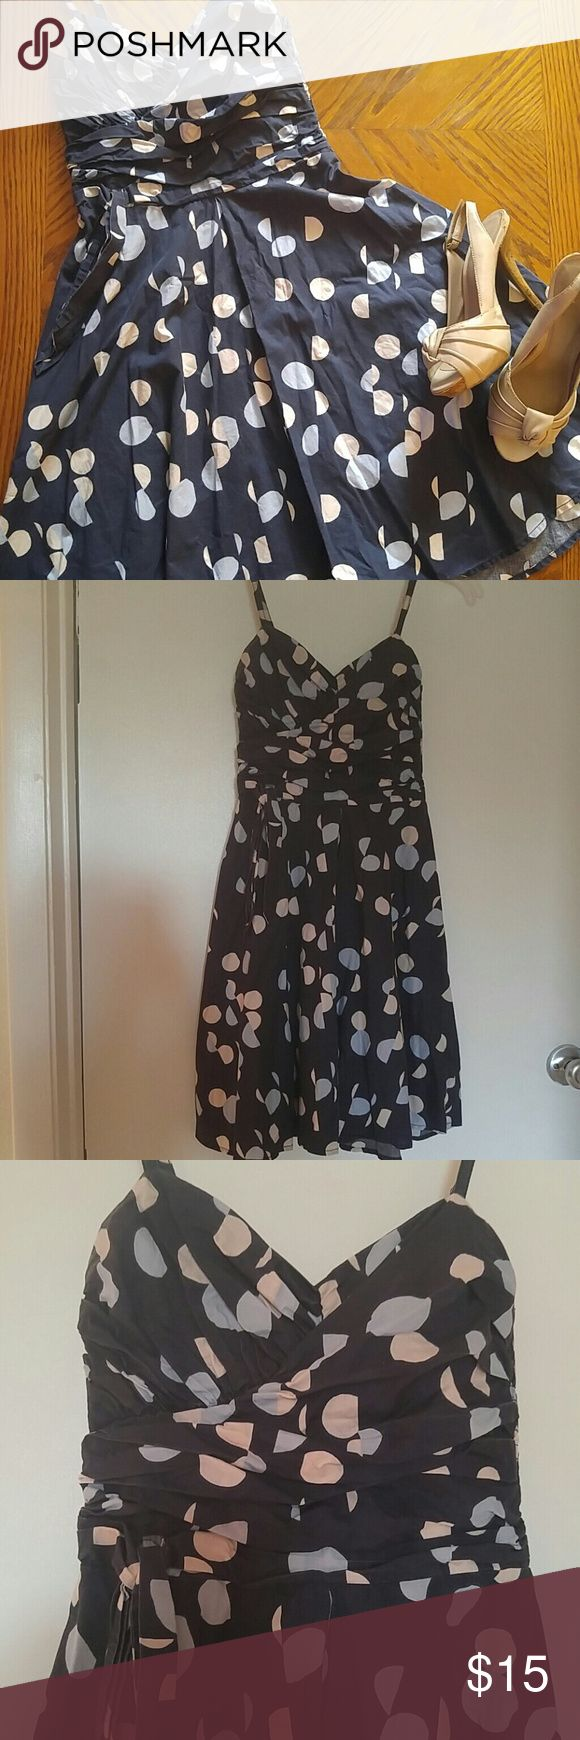 Flirty polka dot dress Spaghetti strap dress with fitted and wrapped chest and torso with a wide skirt. A very flattering style! Great dress for nights out and dancing! Looks great with heels or even keds! Would fit XS-S H&M Dresses